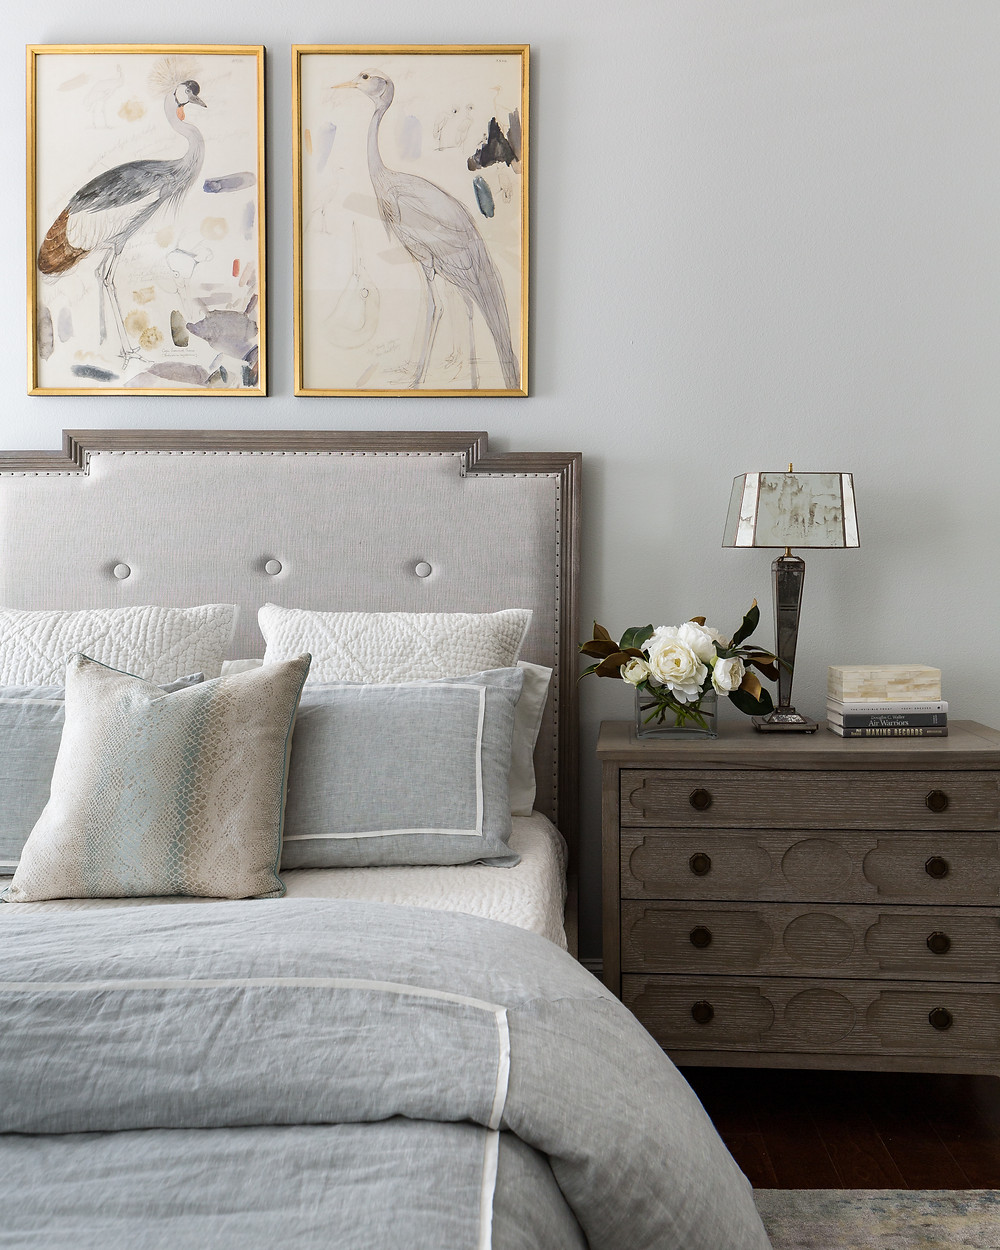 Guest bedroom in Cinco Ranch, Katy TX with wood-framed upholstered bed. Linen bedding and bird art